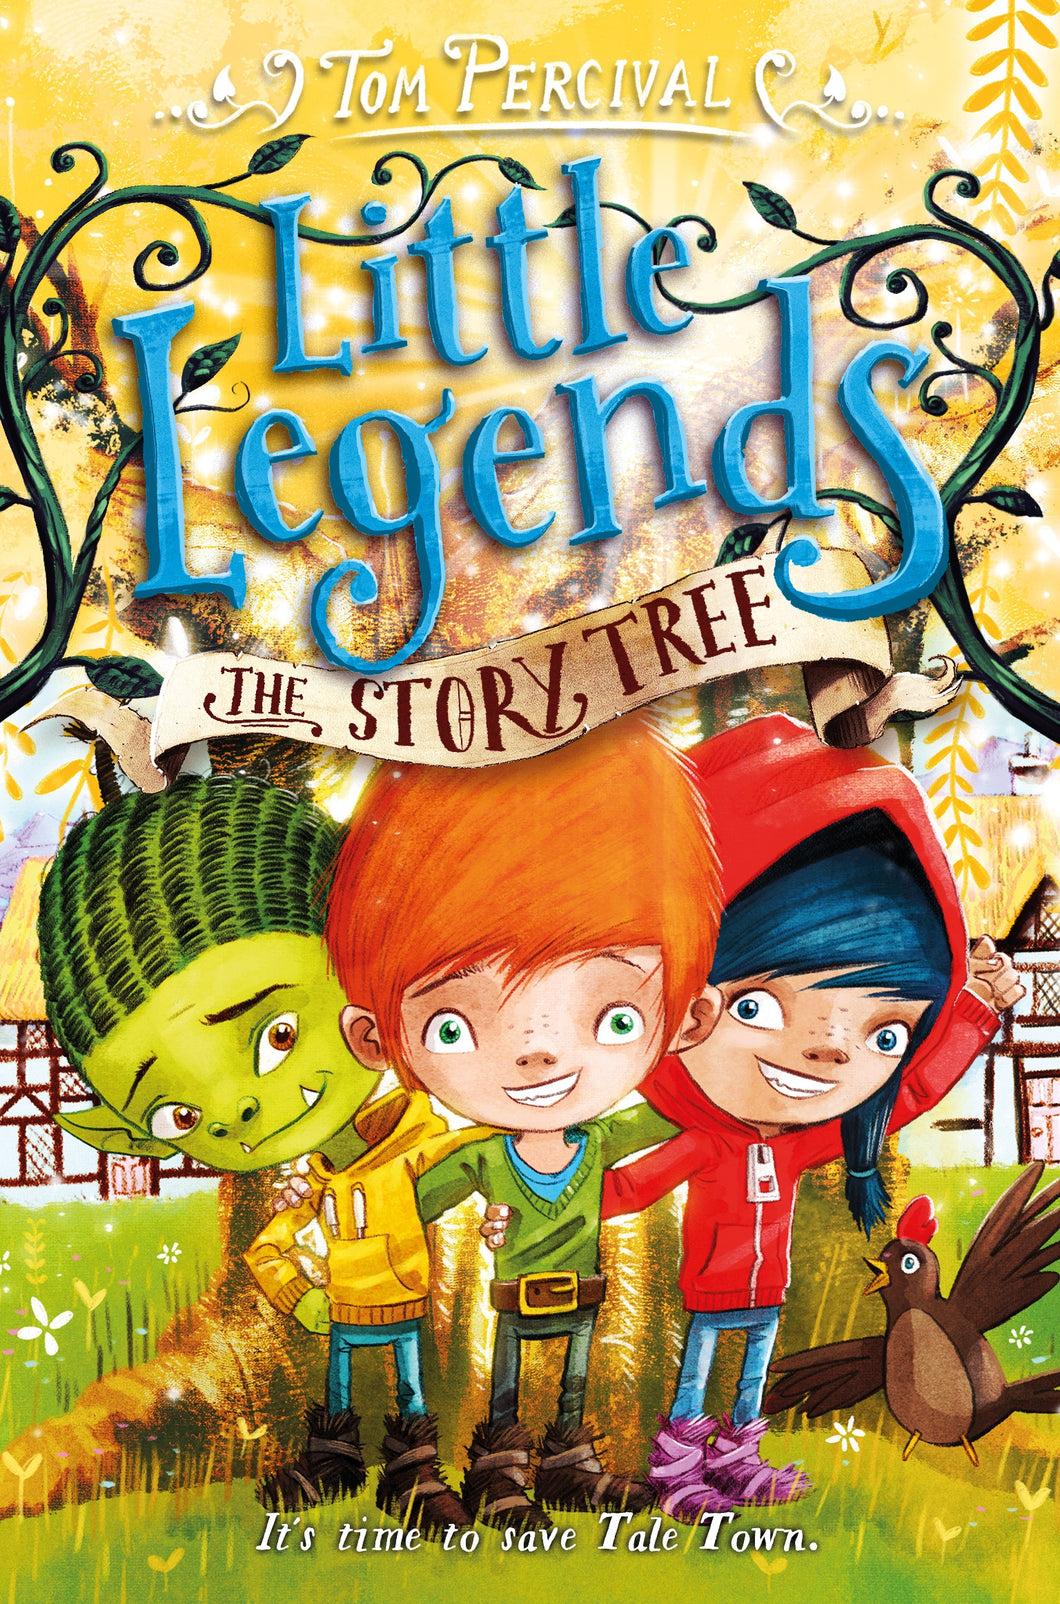 The Story Tree (Little Legends #6)